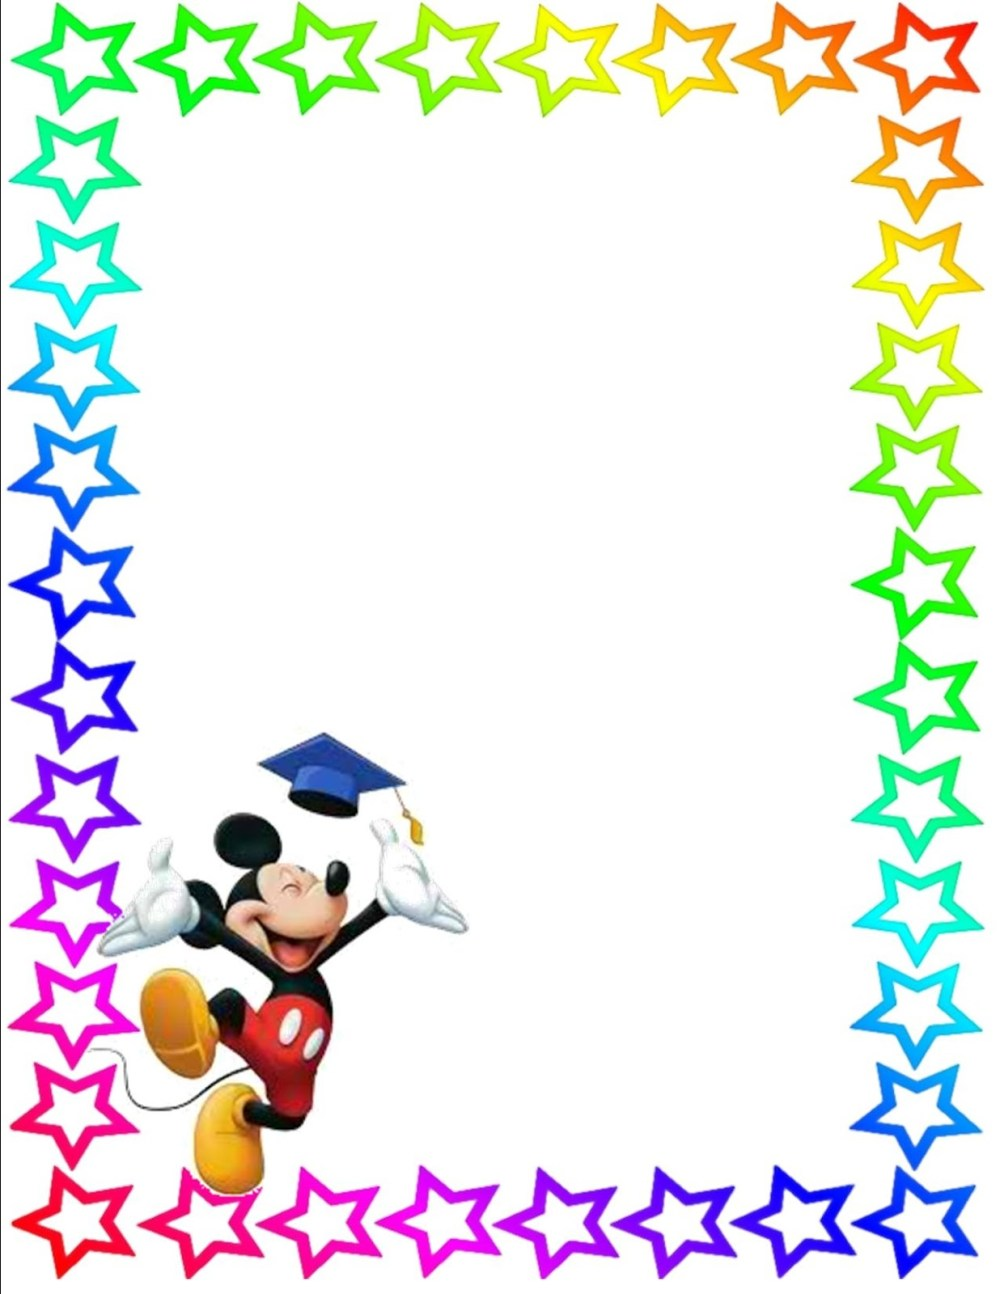 medium resolution of free downloadable stationery borders clipart best